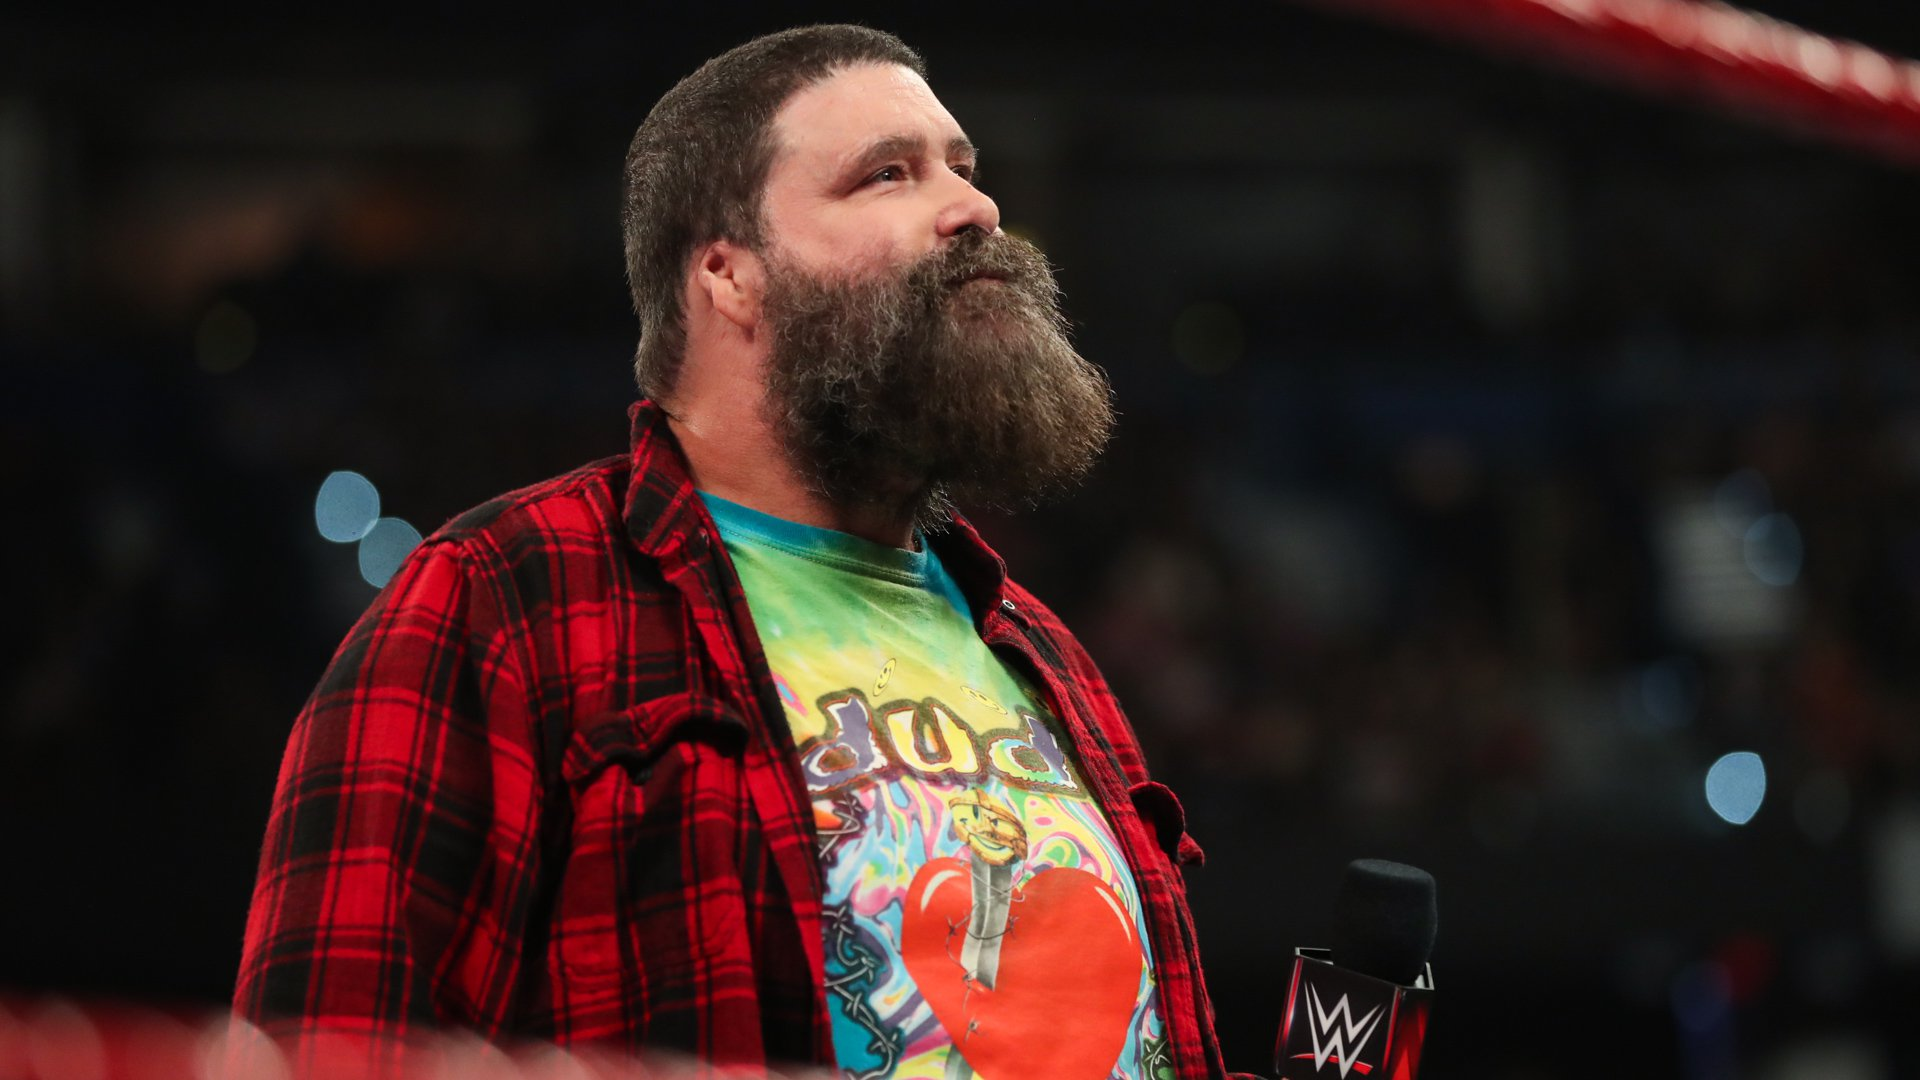 Mick Foley on appearing at Starrcast and whether he sees himself in Bray Wyatt